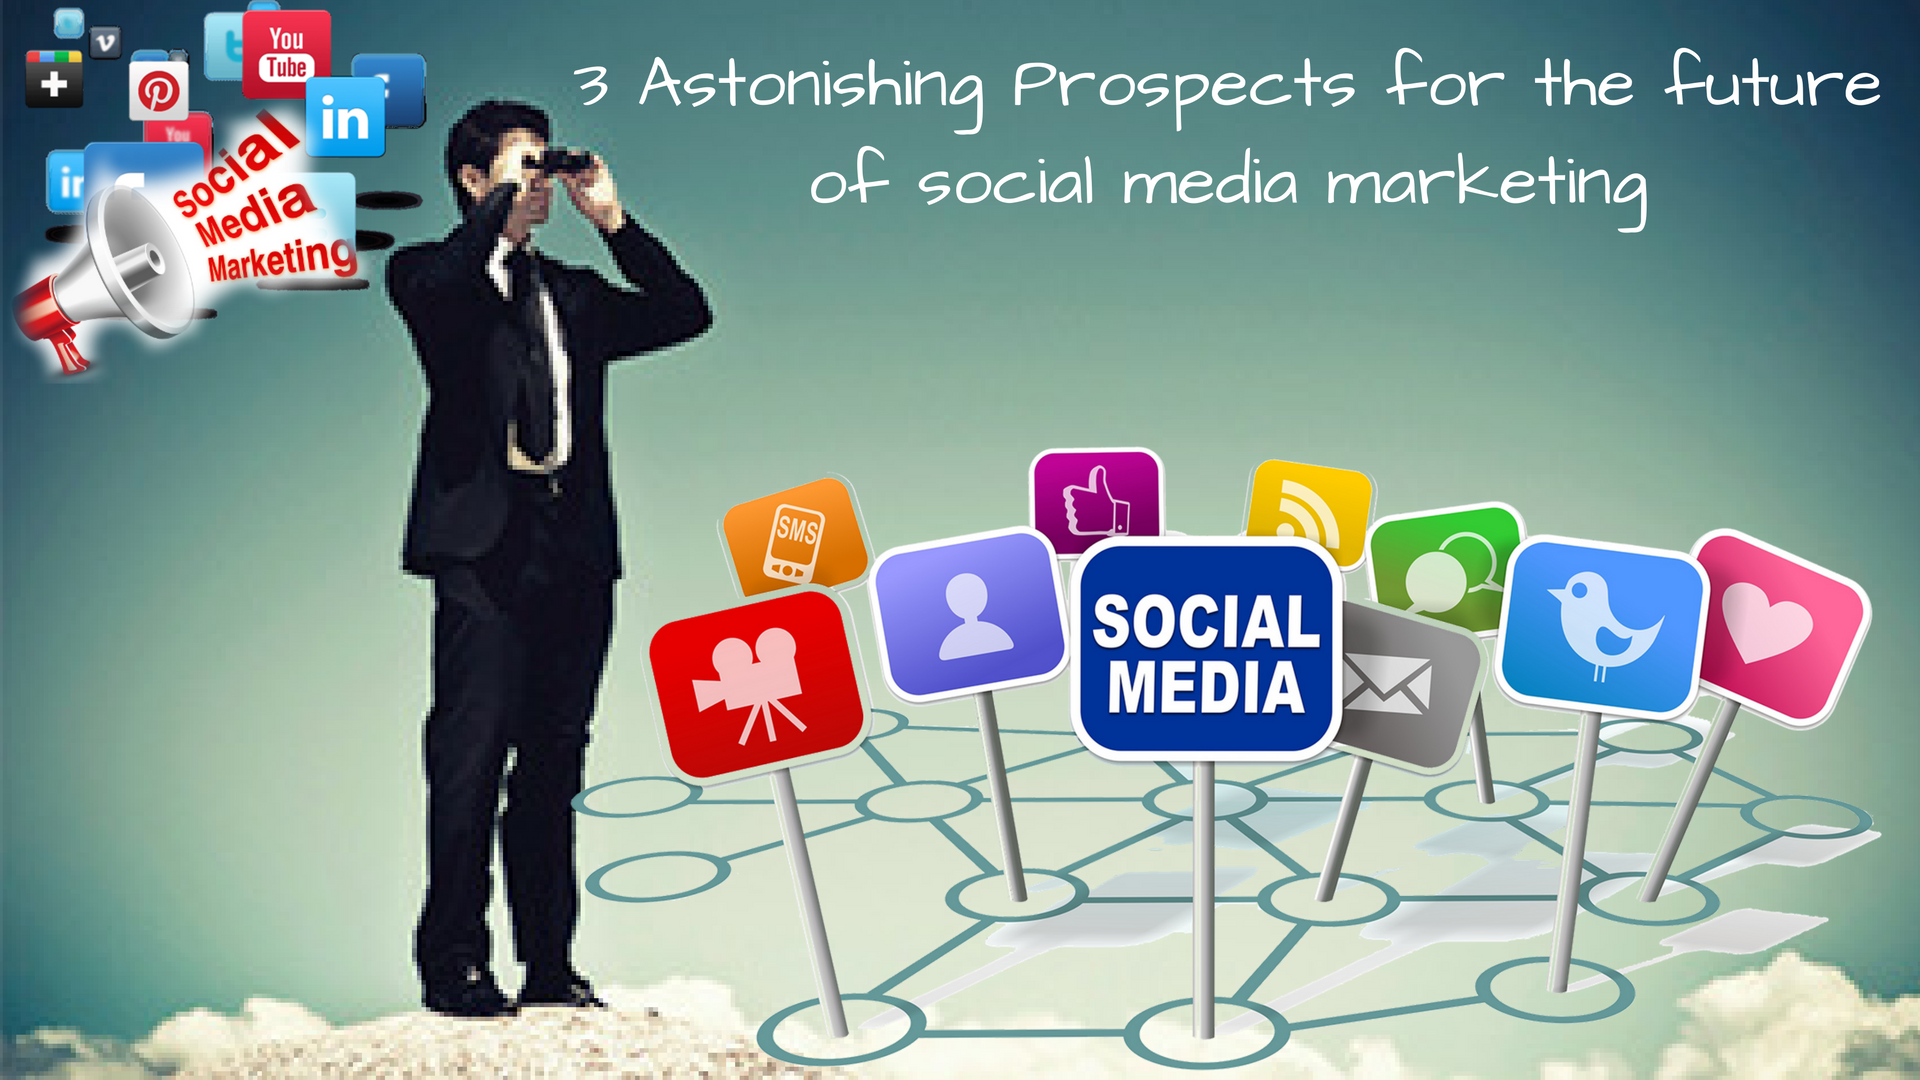 3 Astonishing Prospects for the future of social media marketing